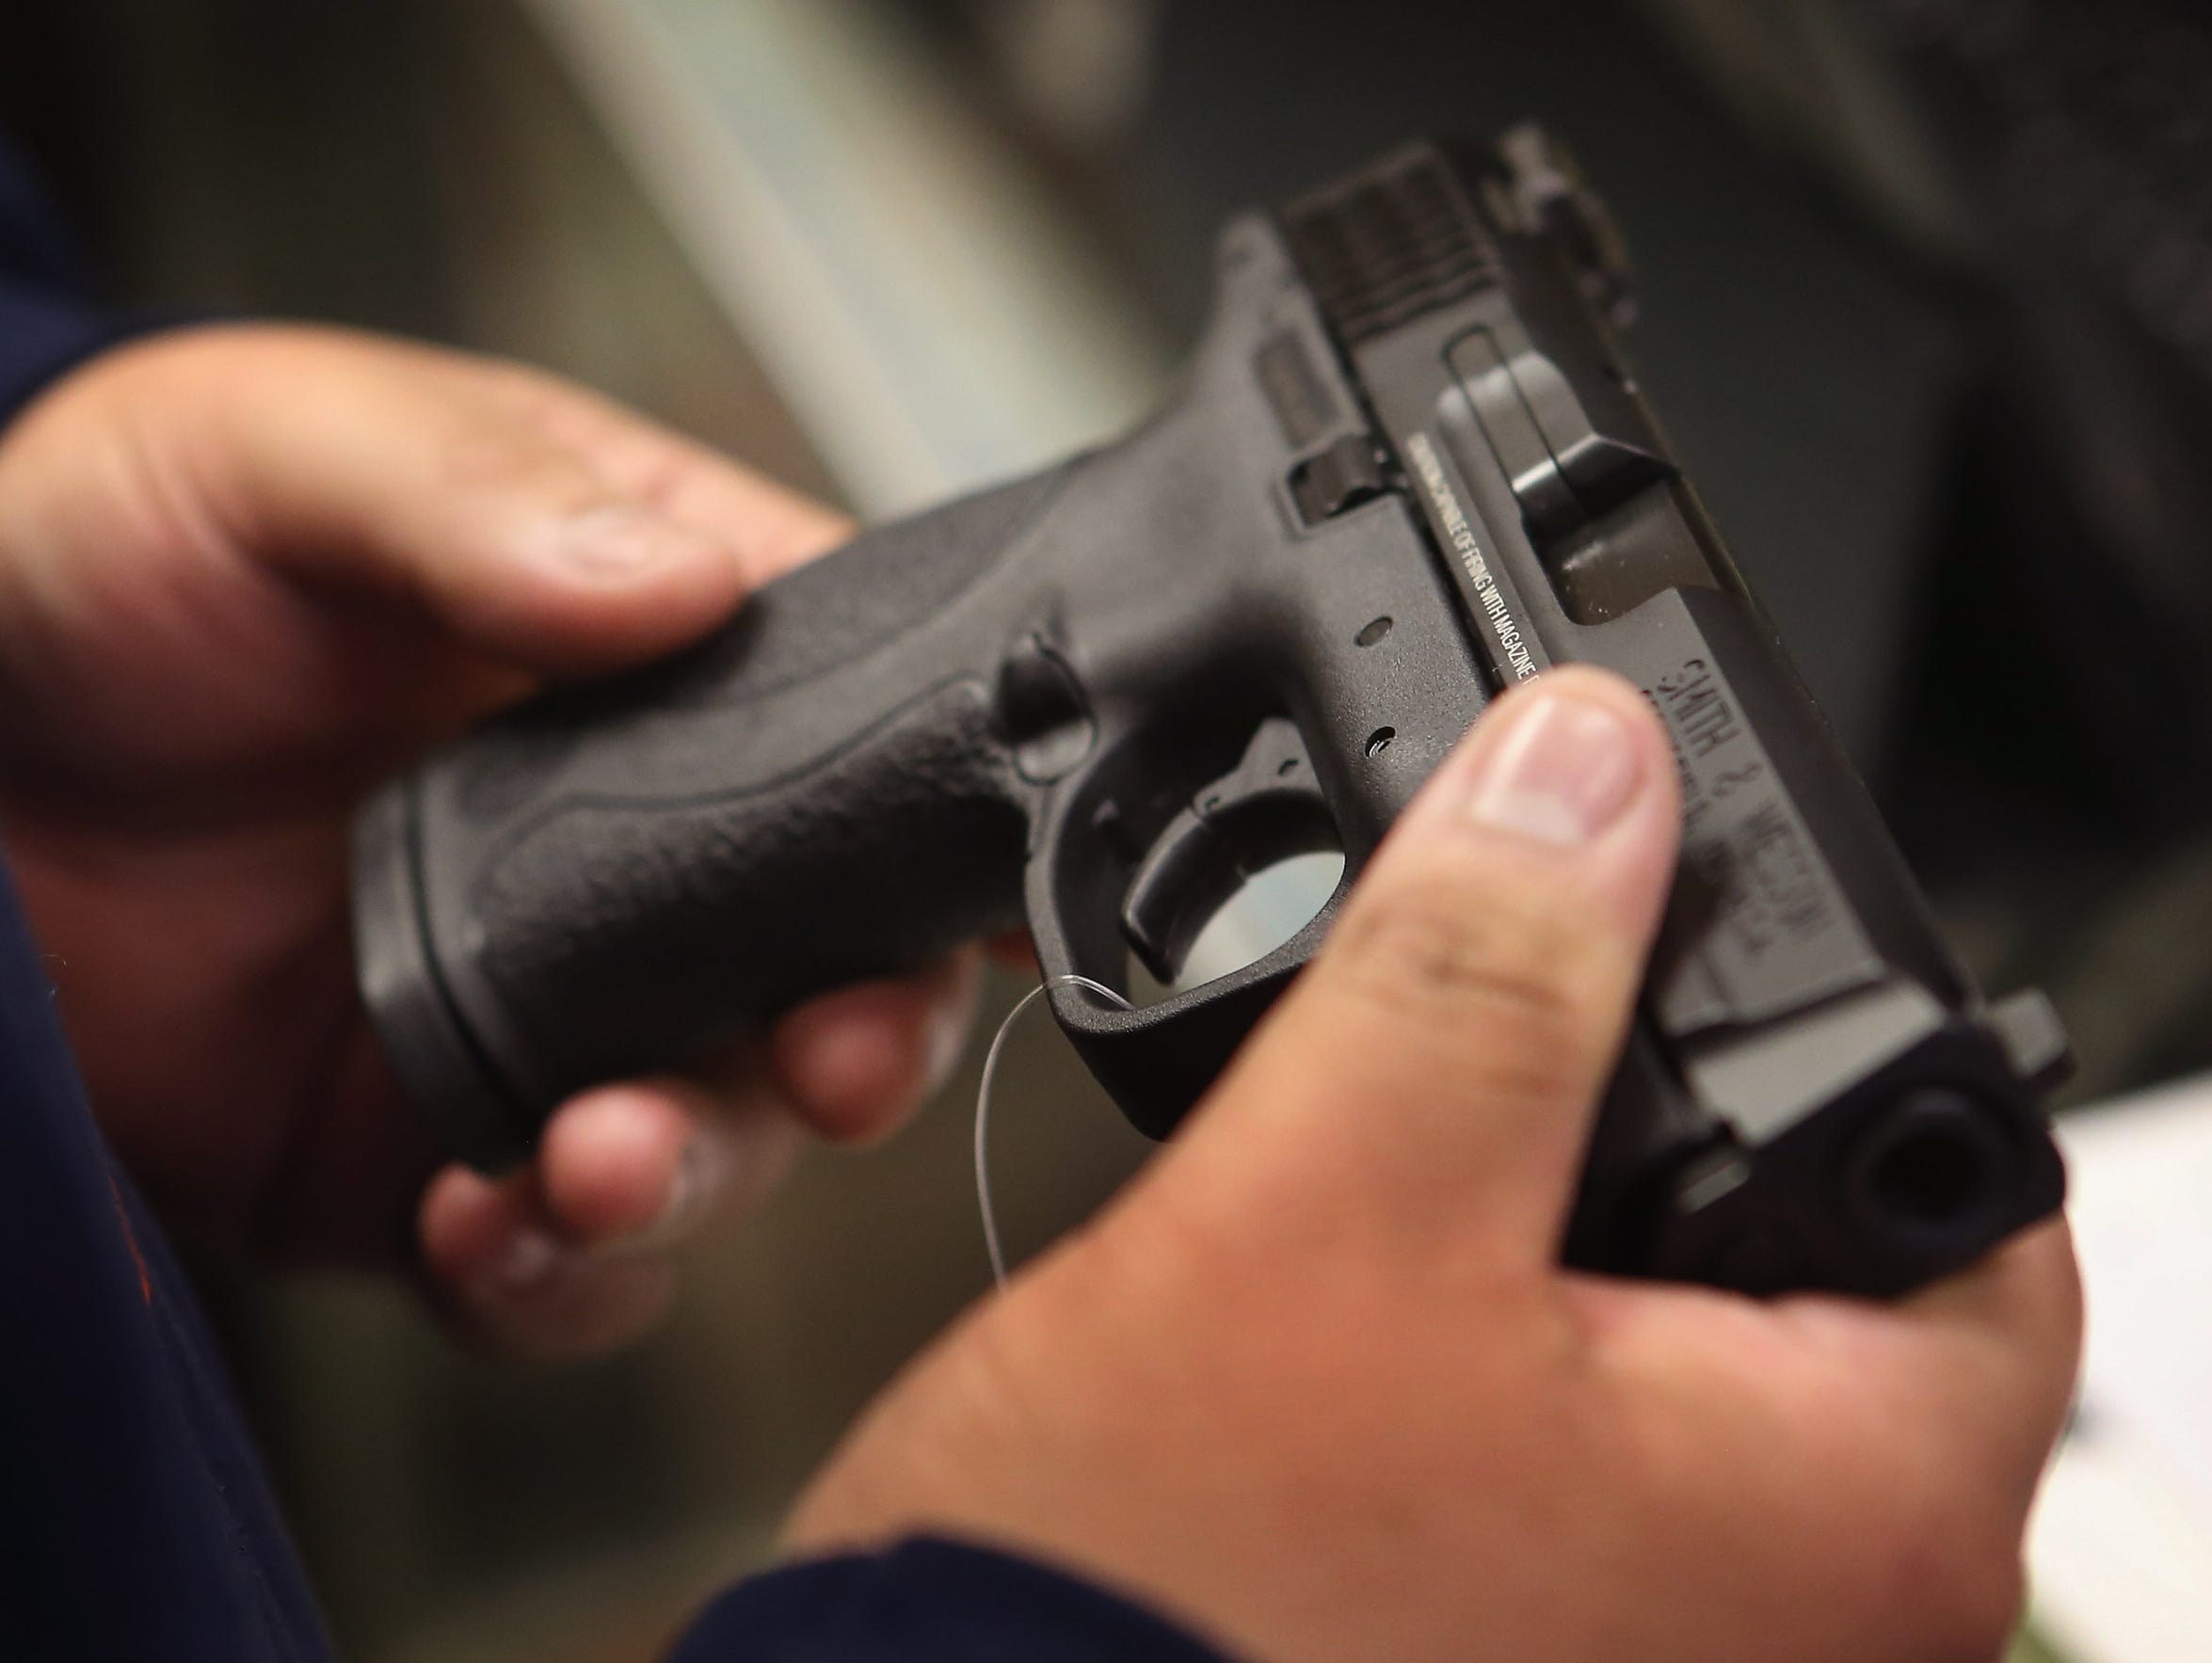 A customer shops for a pistol at an Illinois sporting